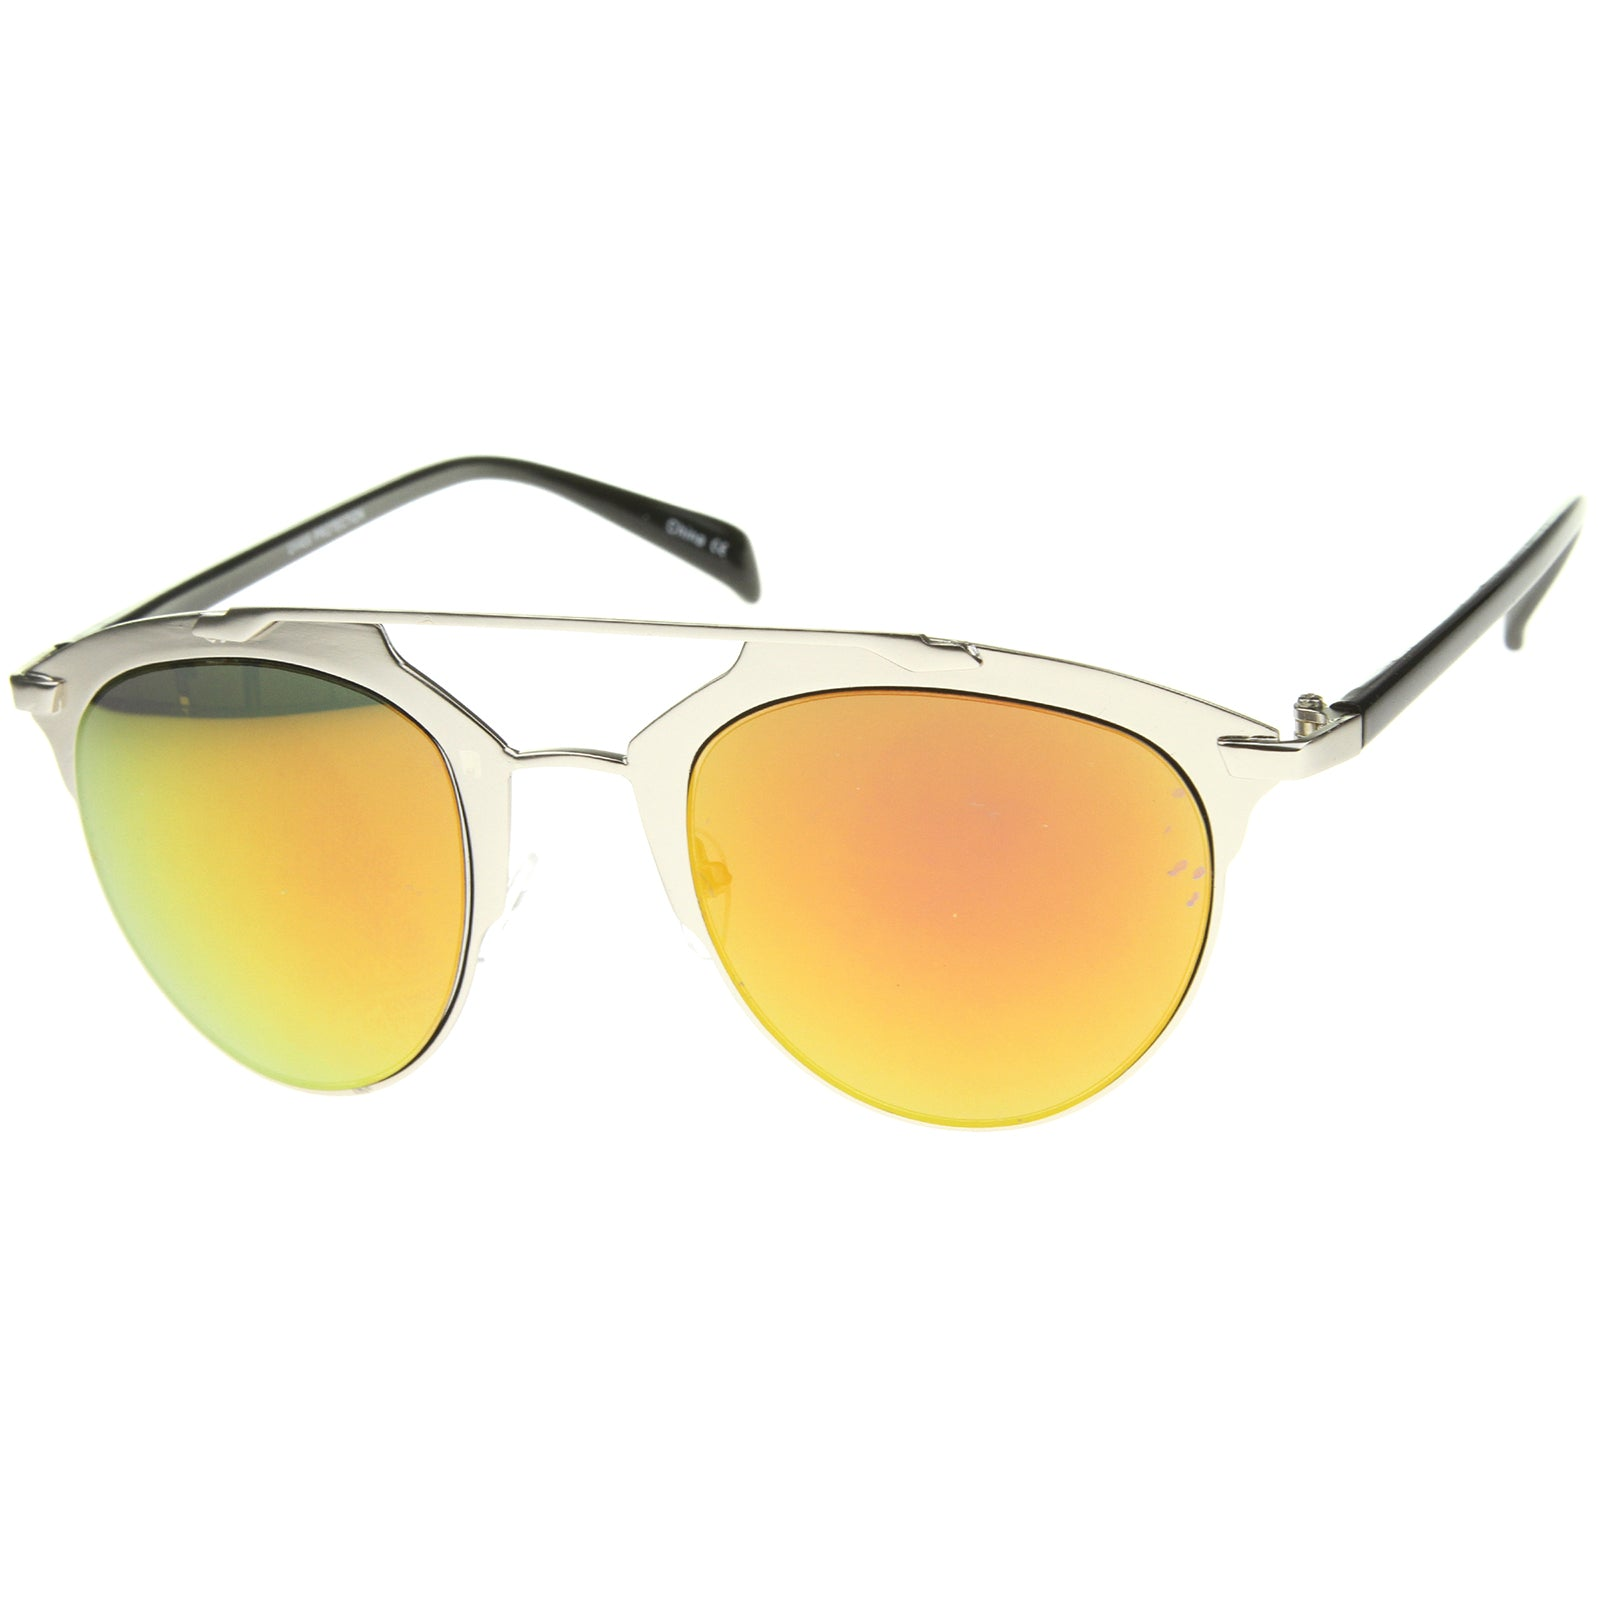 Modern Fashion Metal Double Bridge Mirror Lens Pantos Aviator Sunglasses 50mm - sunglass.la - 10